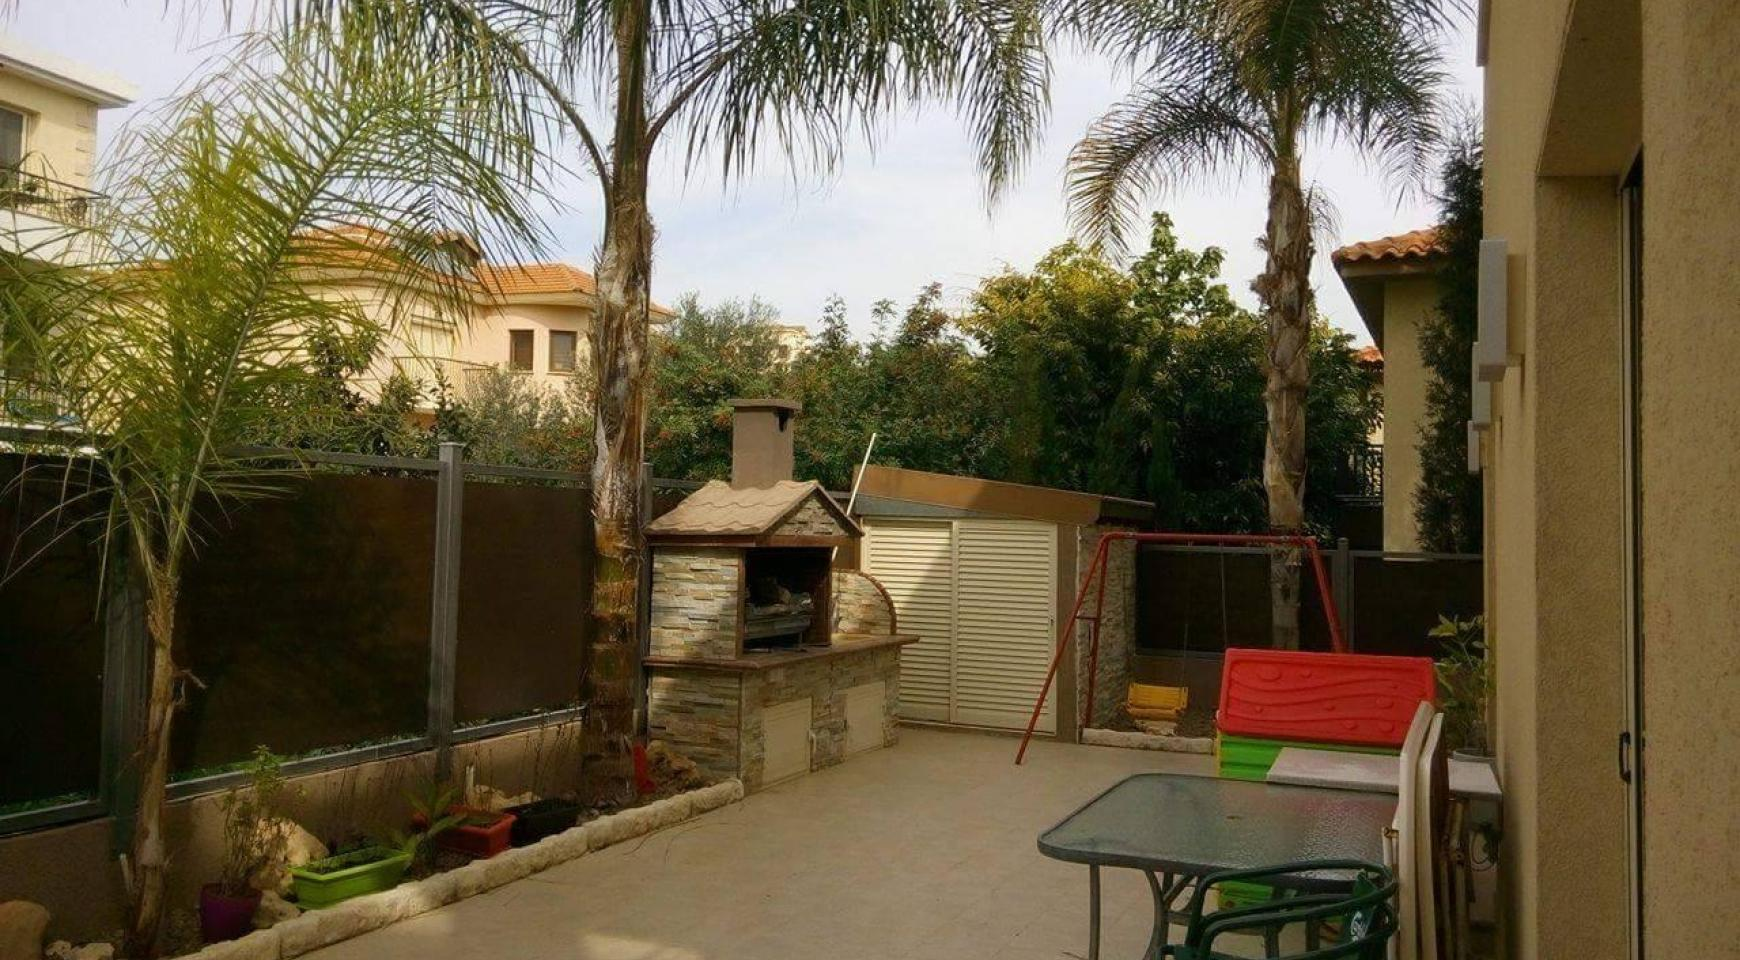 4 Bedroom House in Agios Athanasios Area - 8